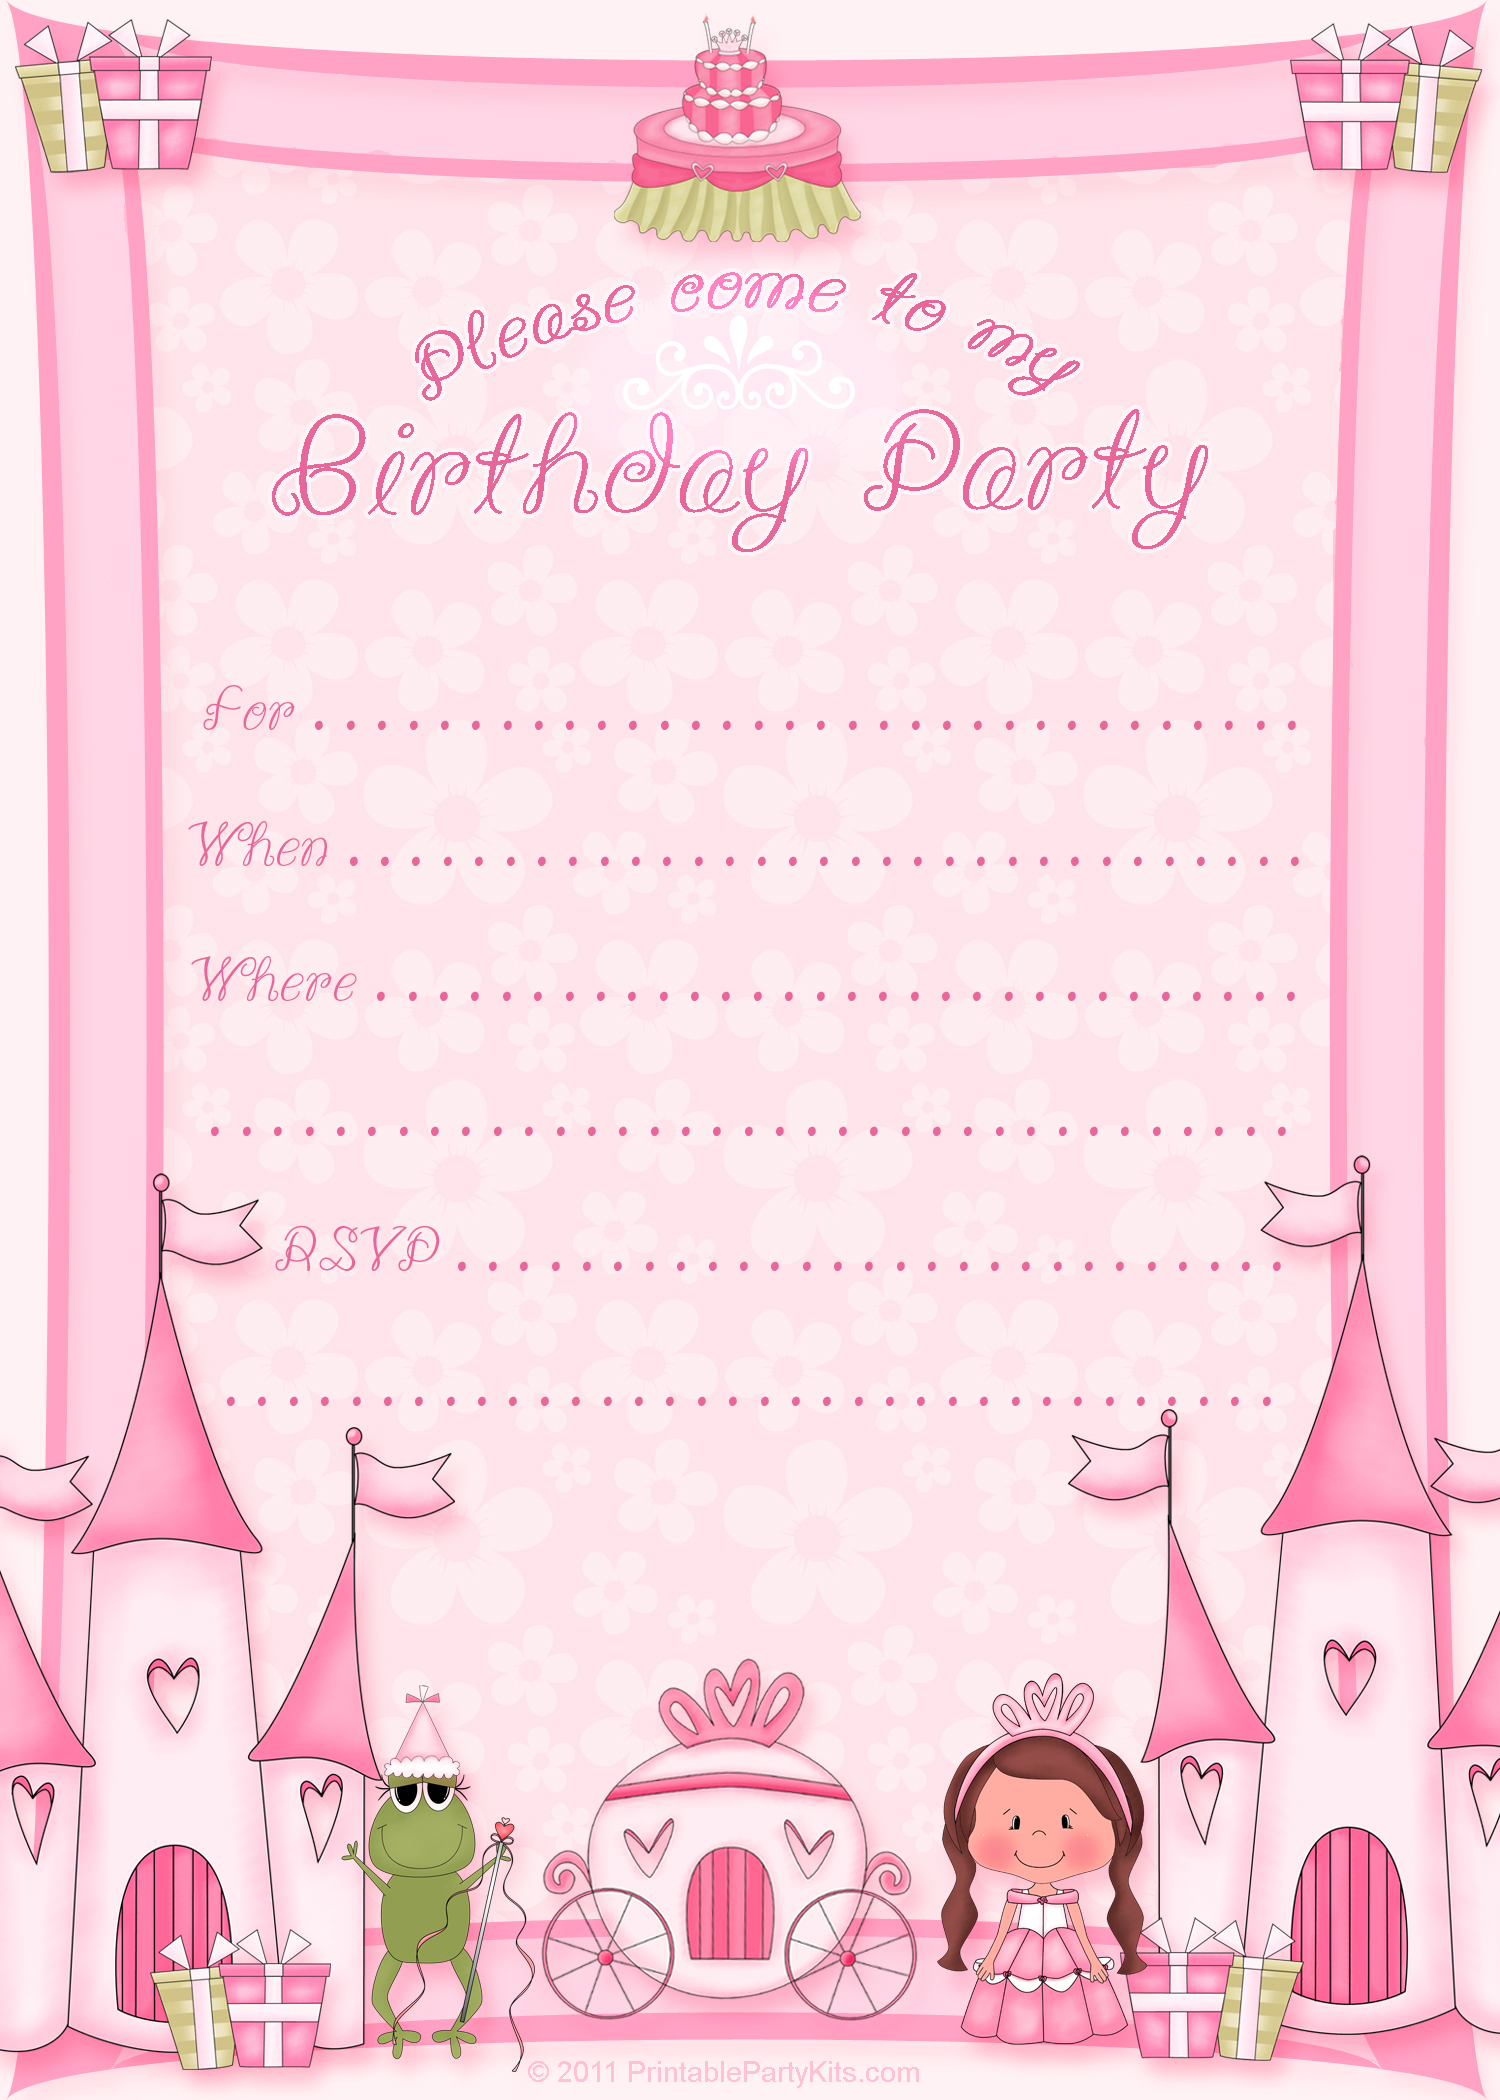 birthday invitations printable free online ; Birthday-Party-Invitations-Online-should-inspire-you-to-create-awesome-invitations-template-1